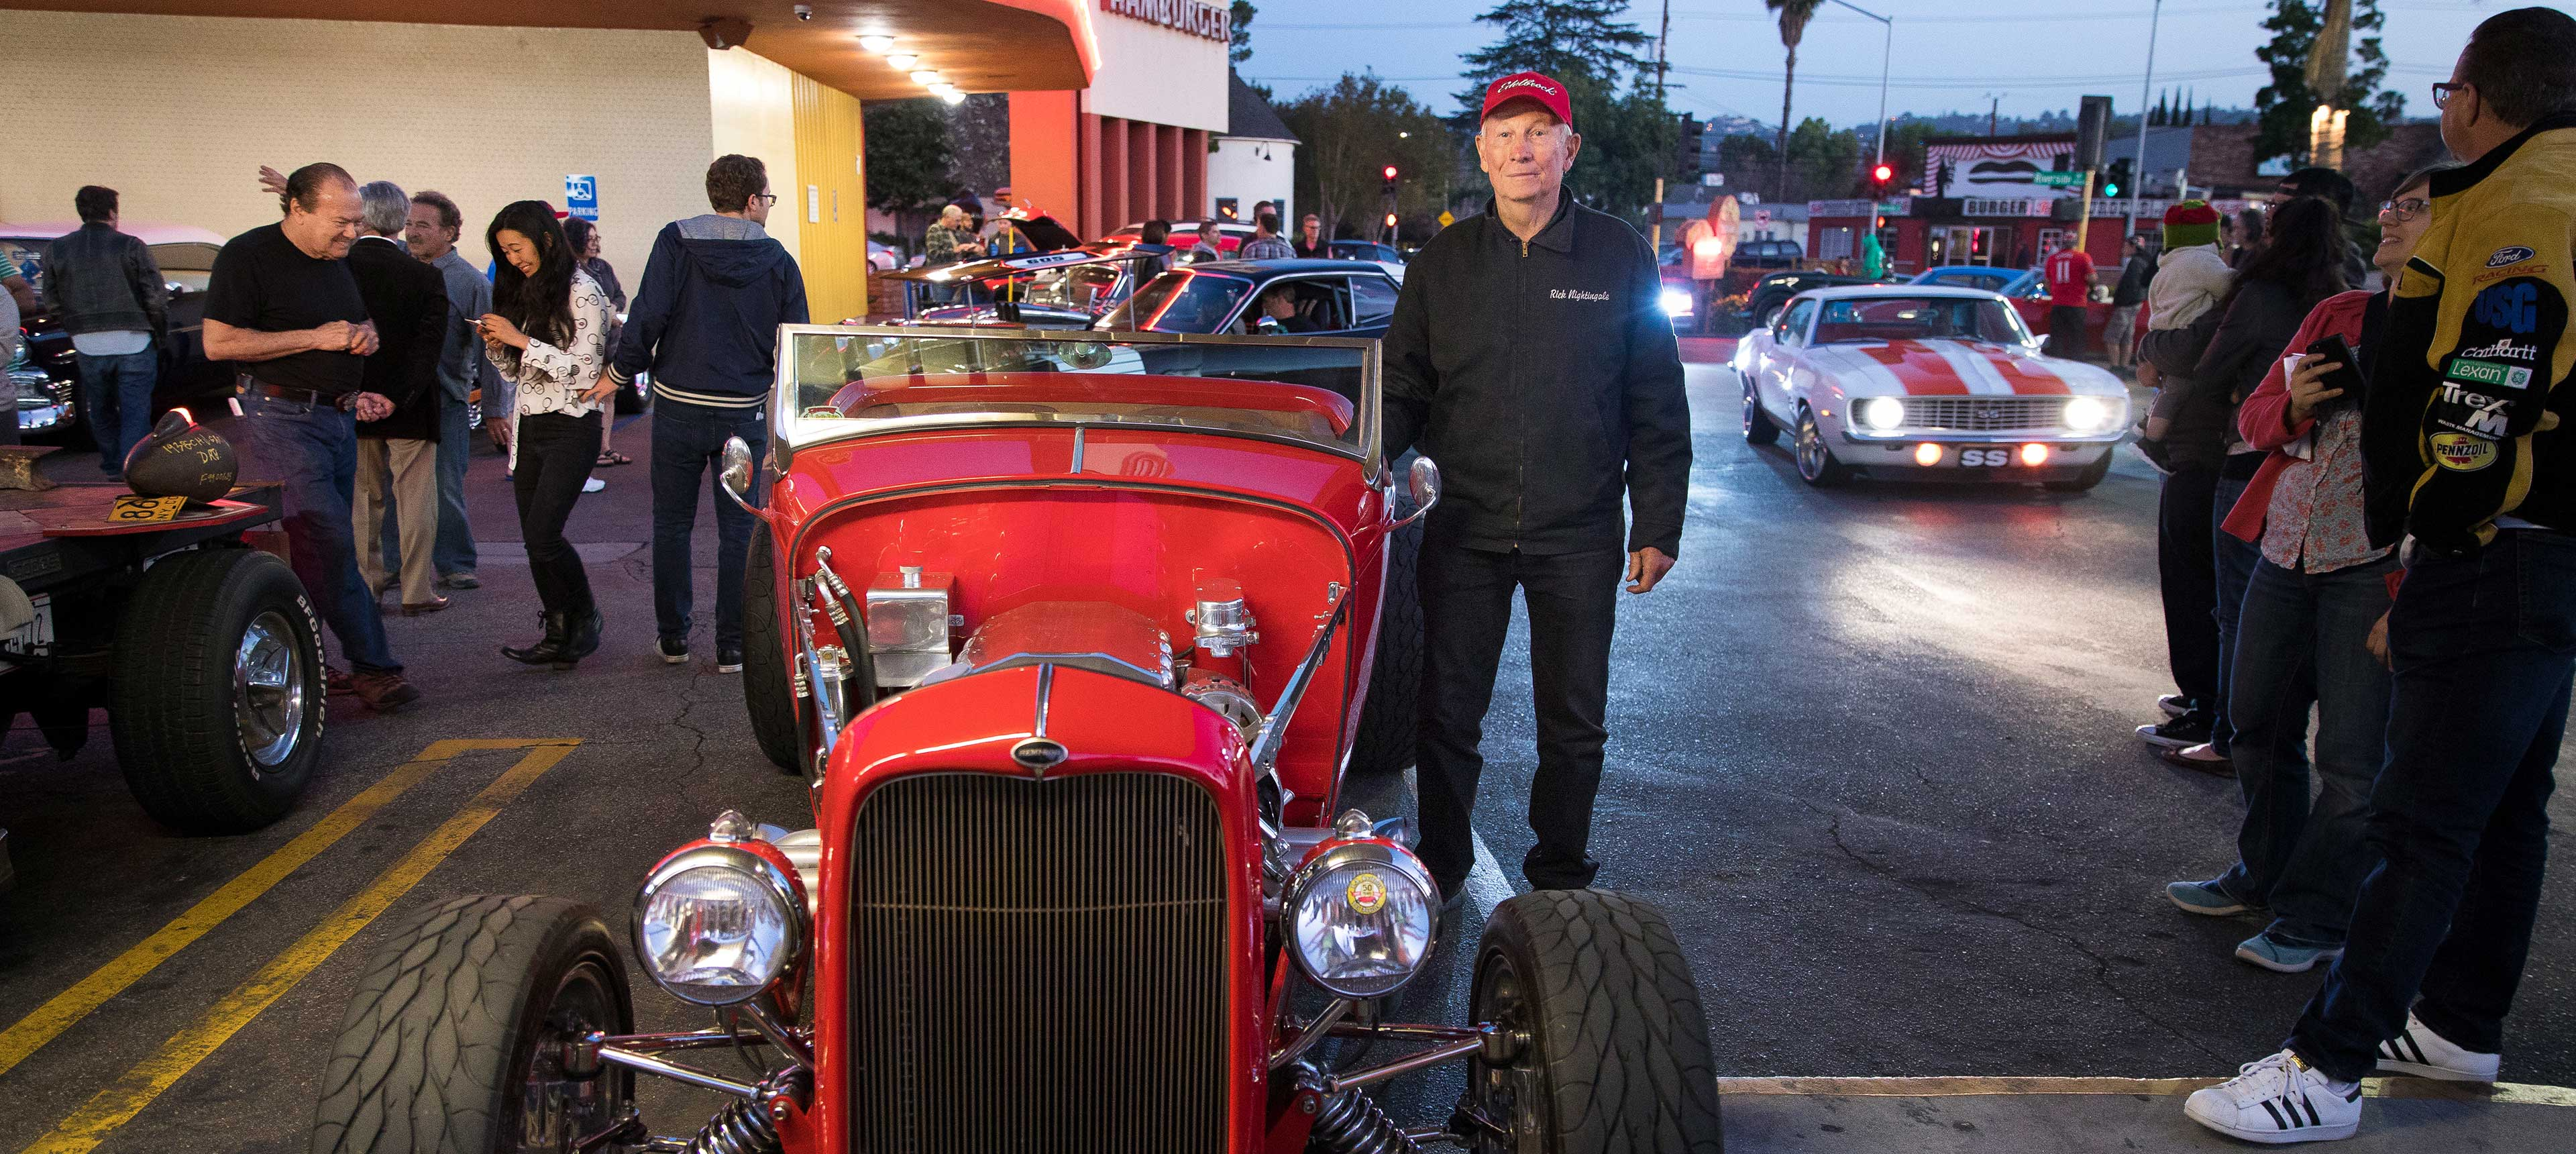 Cruising At The Car Show Toluca Lake - The car show